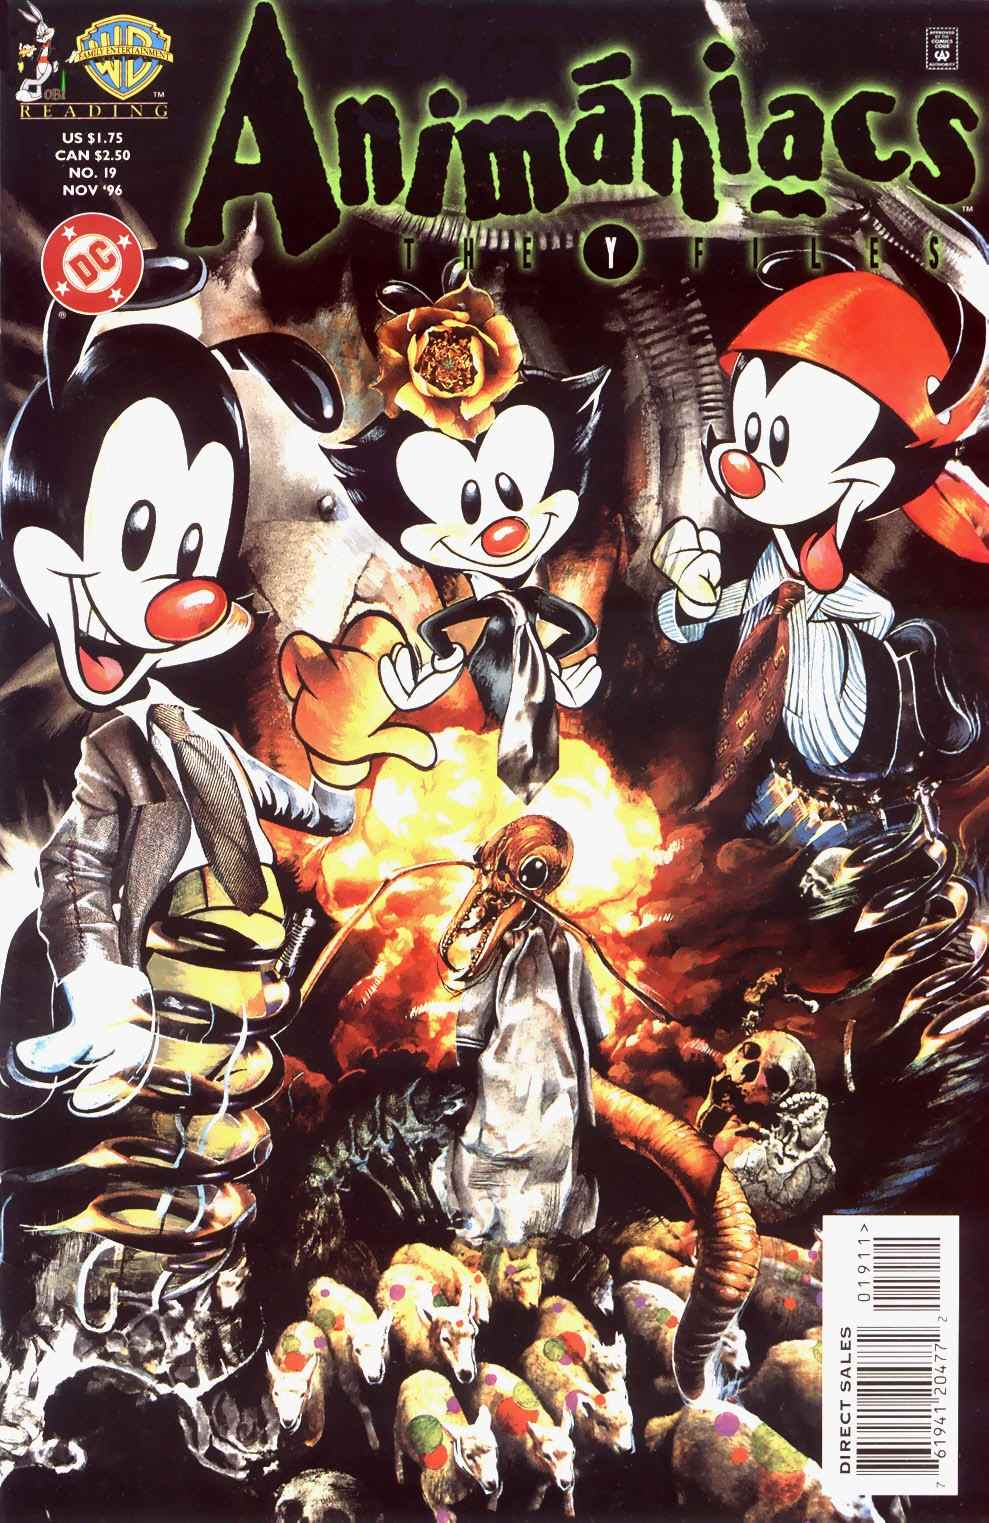 Animaniacs Issue 19